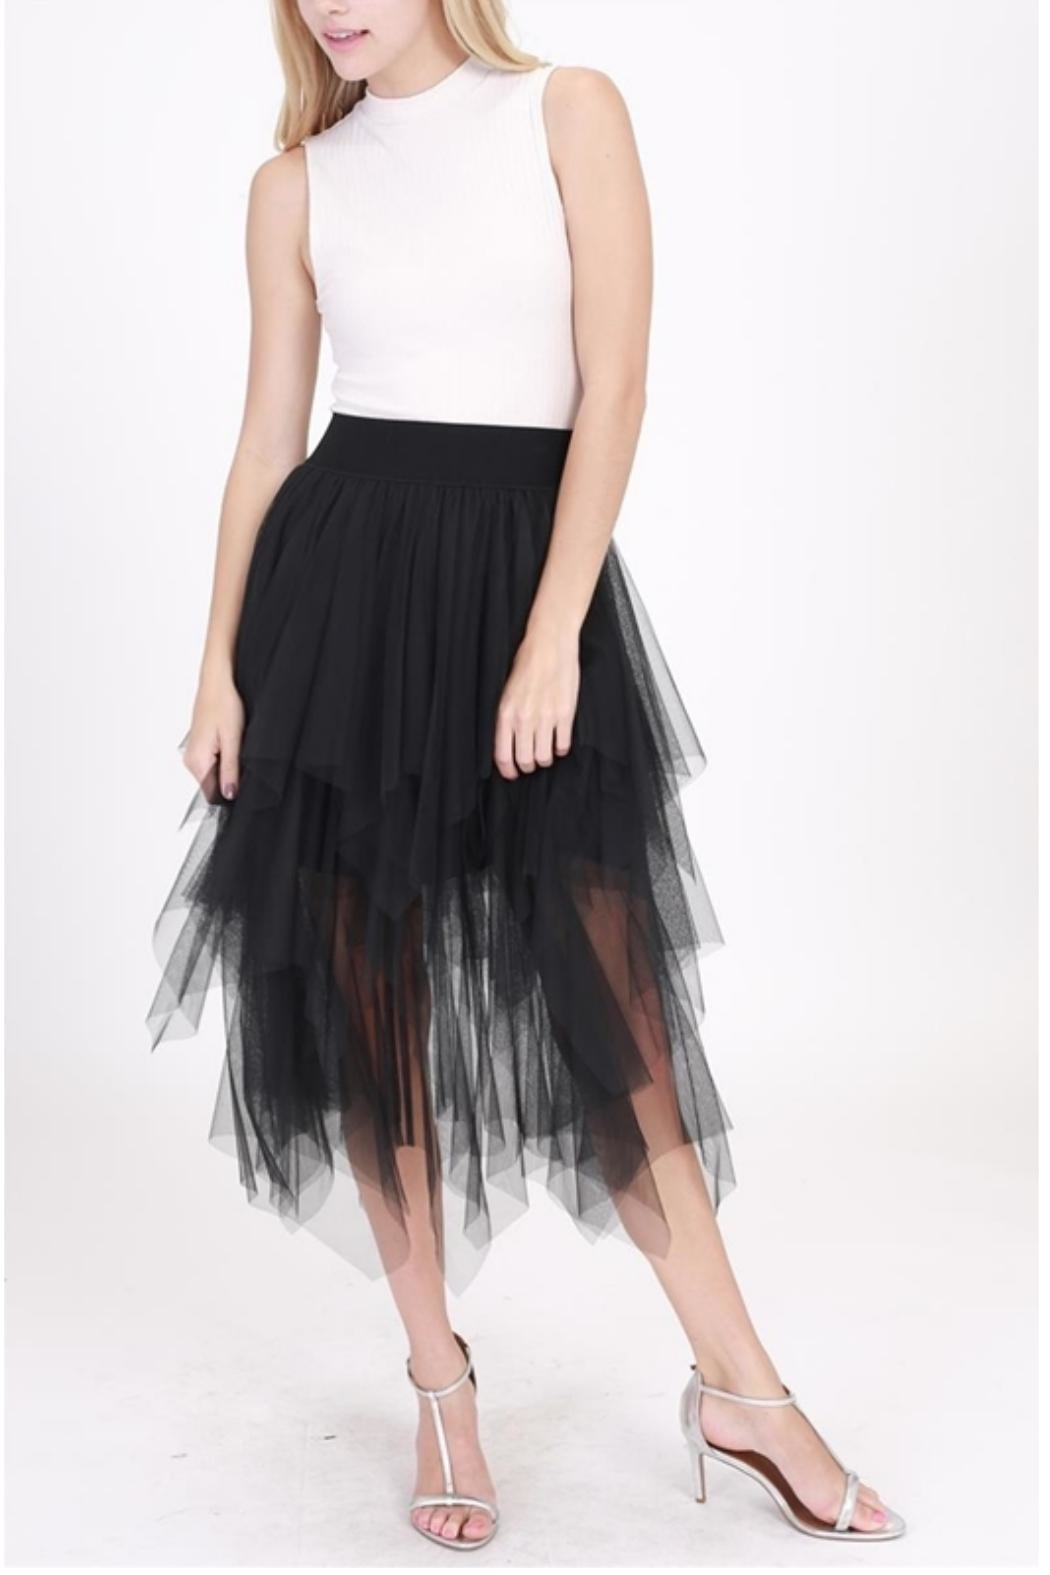 HYFVE Romantic Tulle Skirt - Front Cropped Image